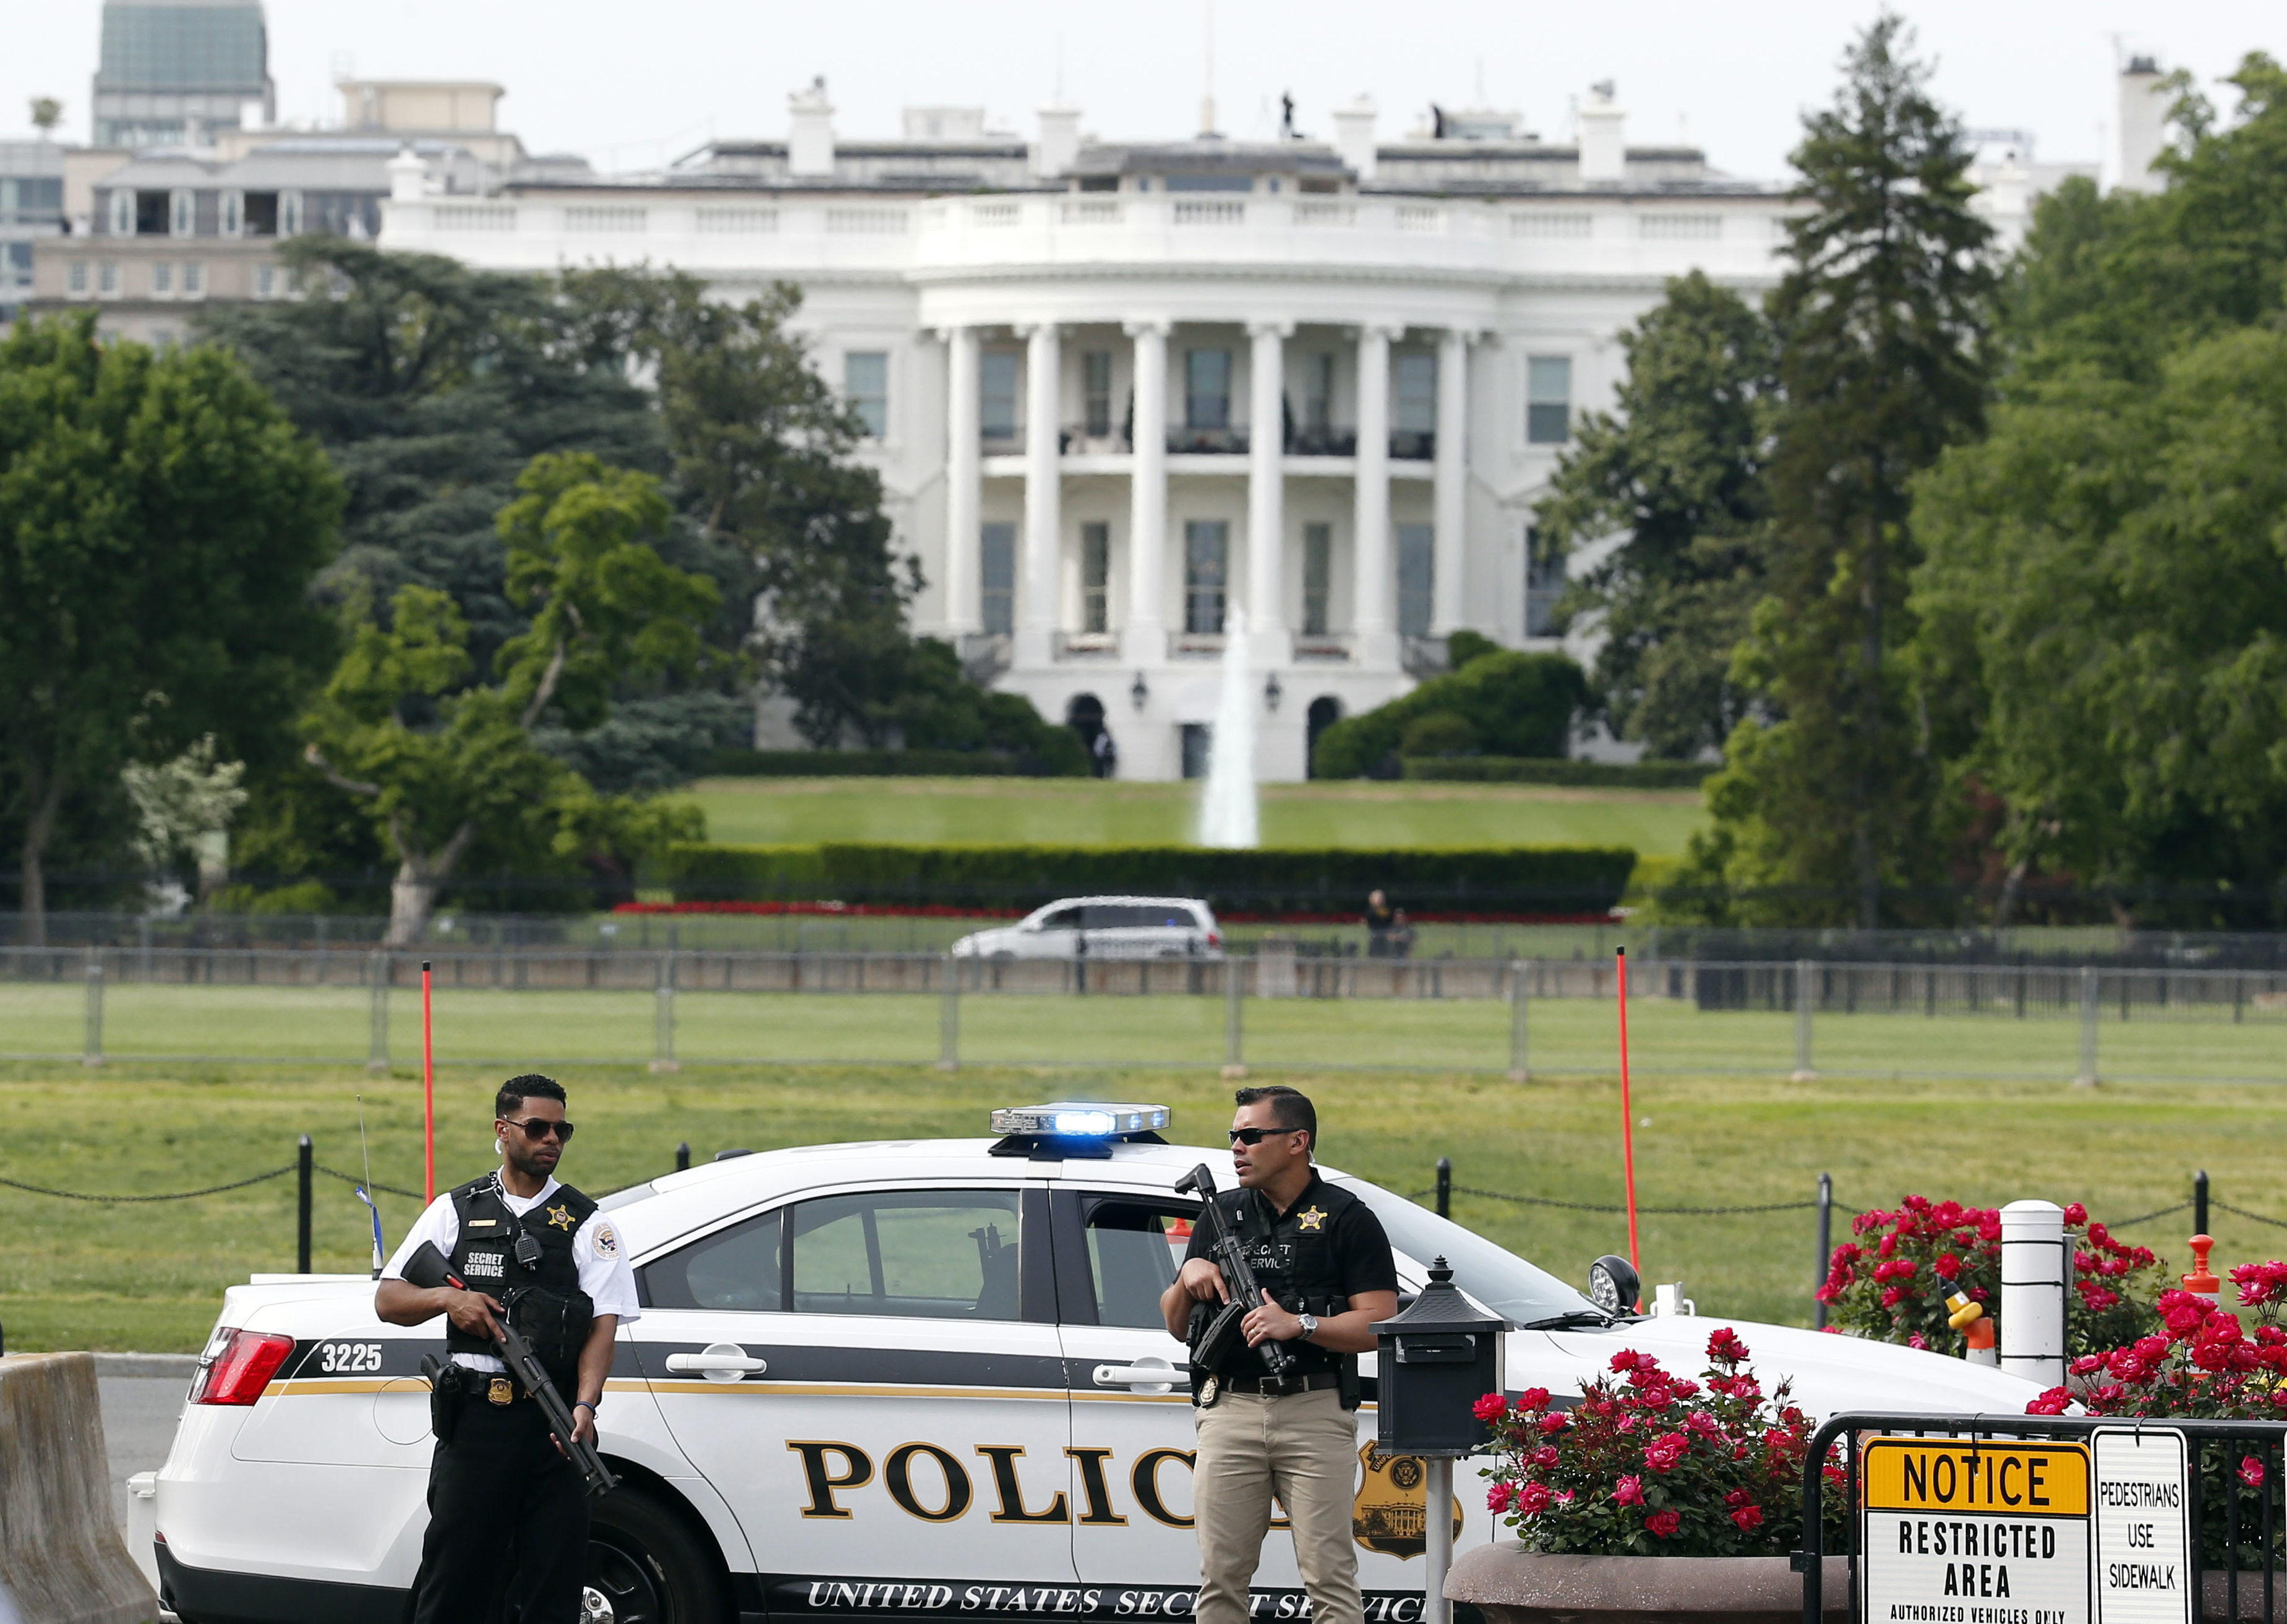 Man shot outside White House I came here to shoot people